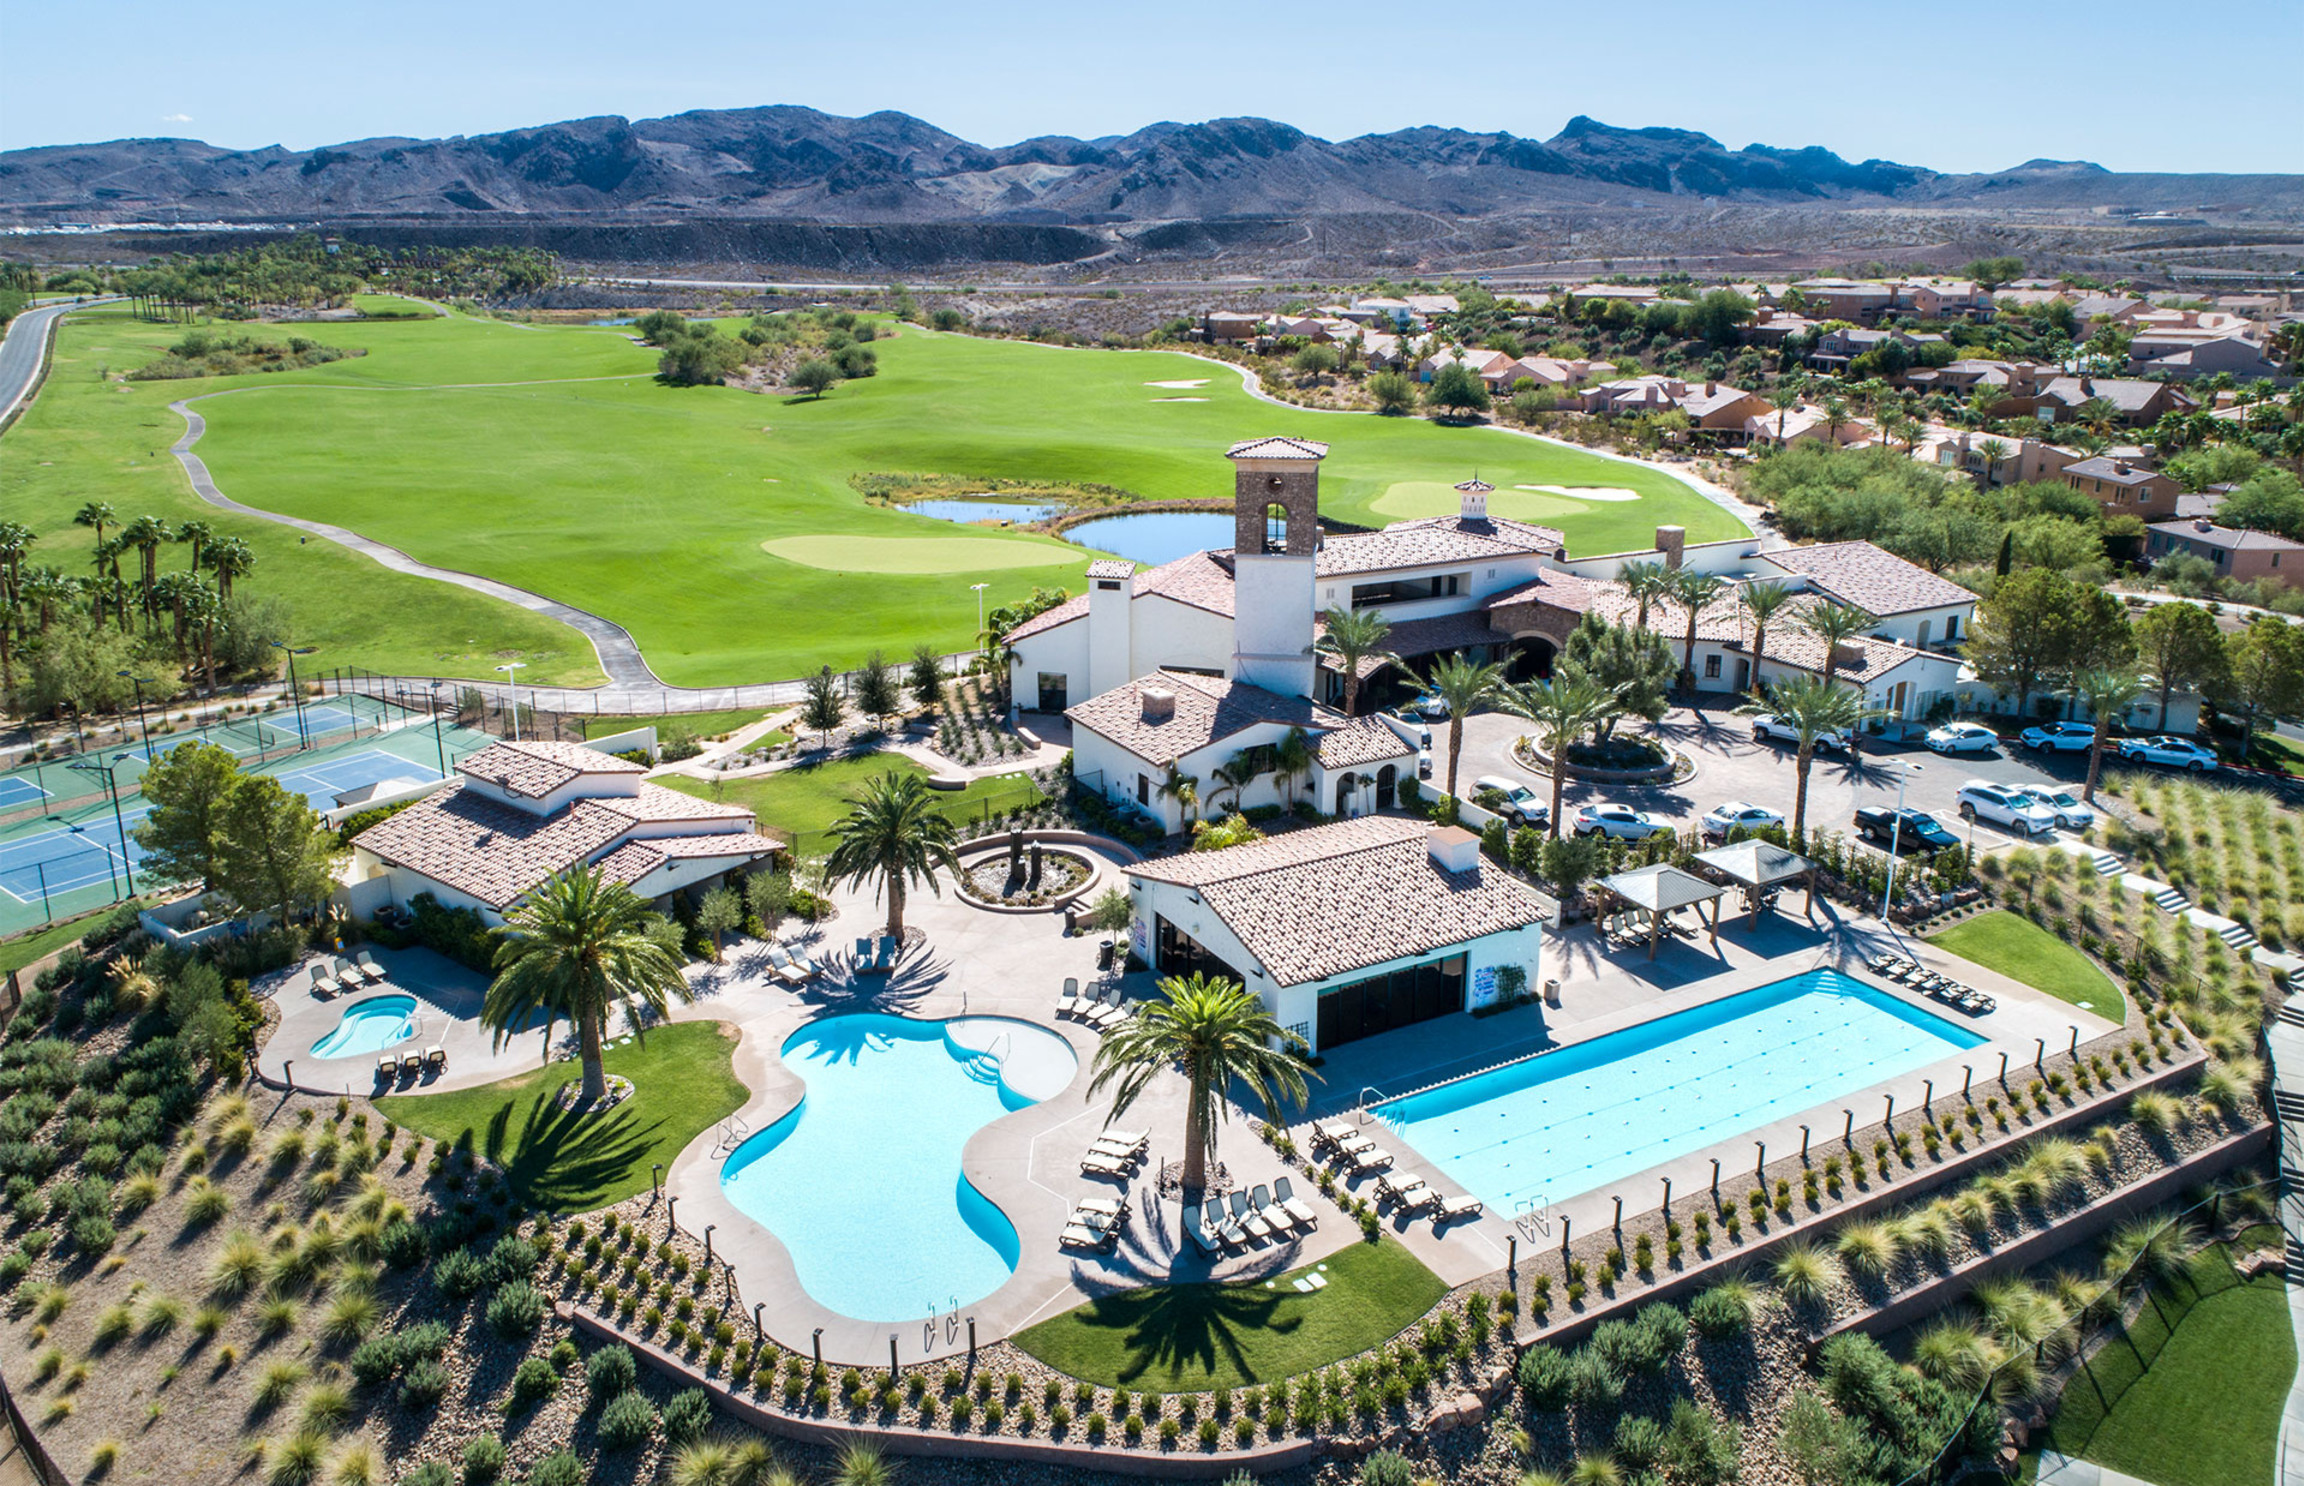 del webb at lake las vegas new home communities henderson nevada homes del webb del webb at lake las vegas new home